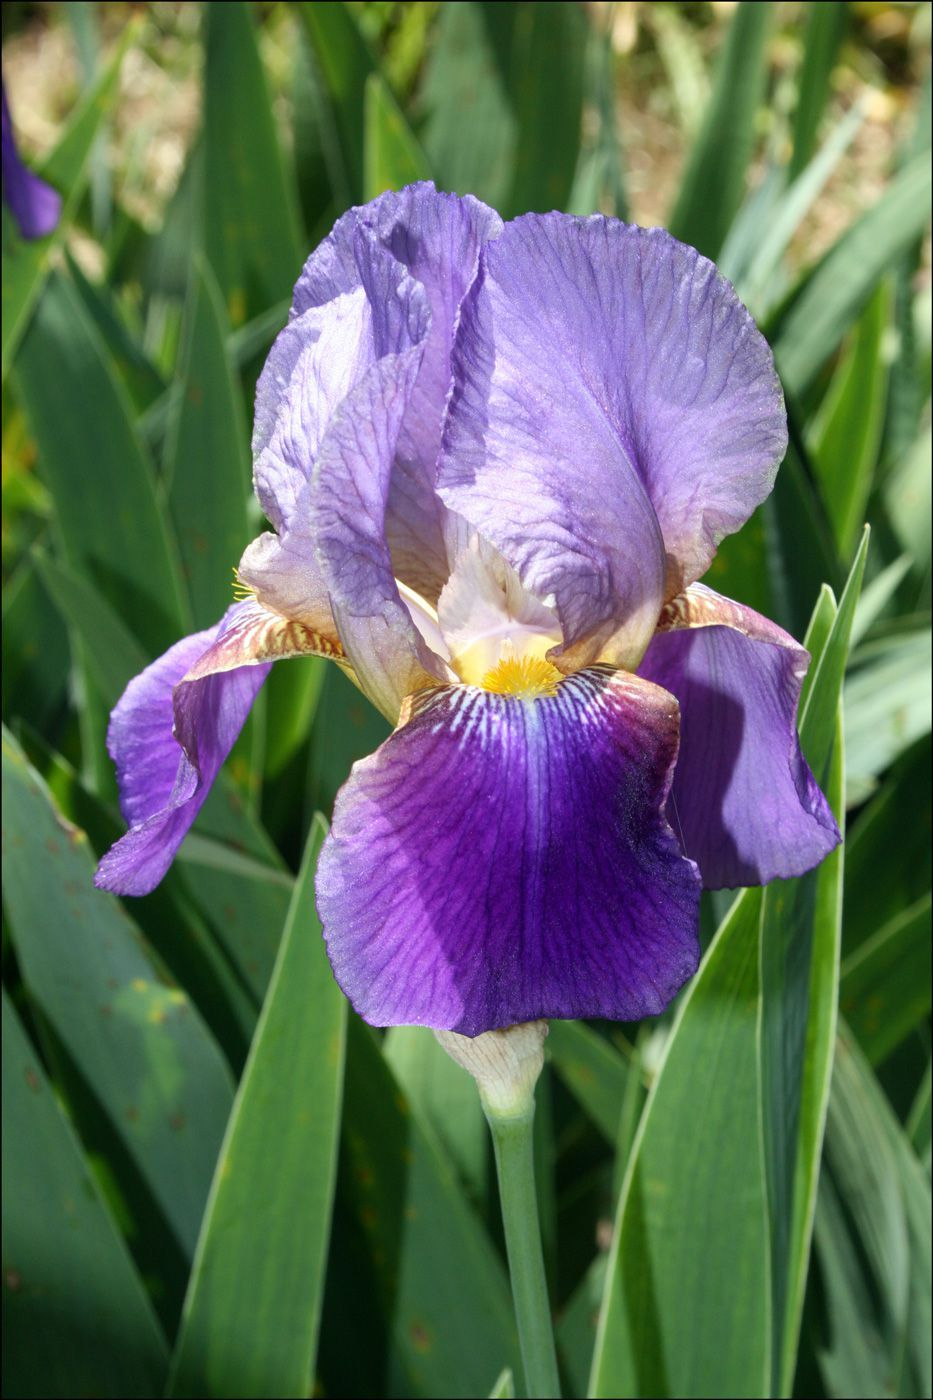 Bearded iris wallpaper landscapes pinterest bearded iris and iris iris izmirmasajfo